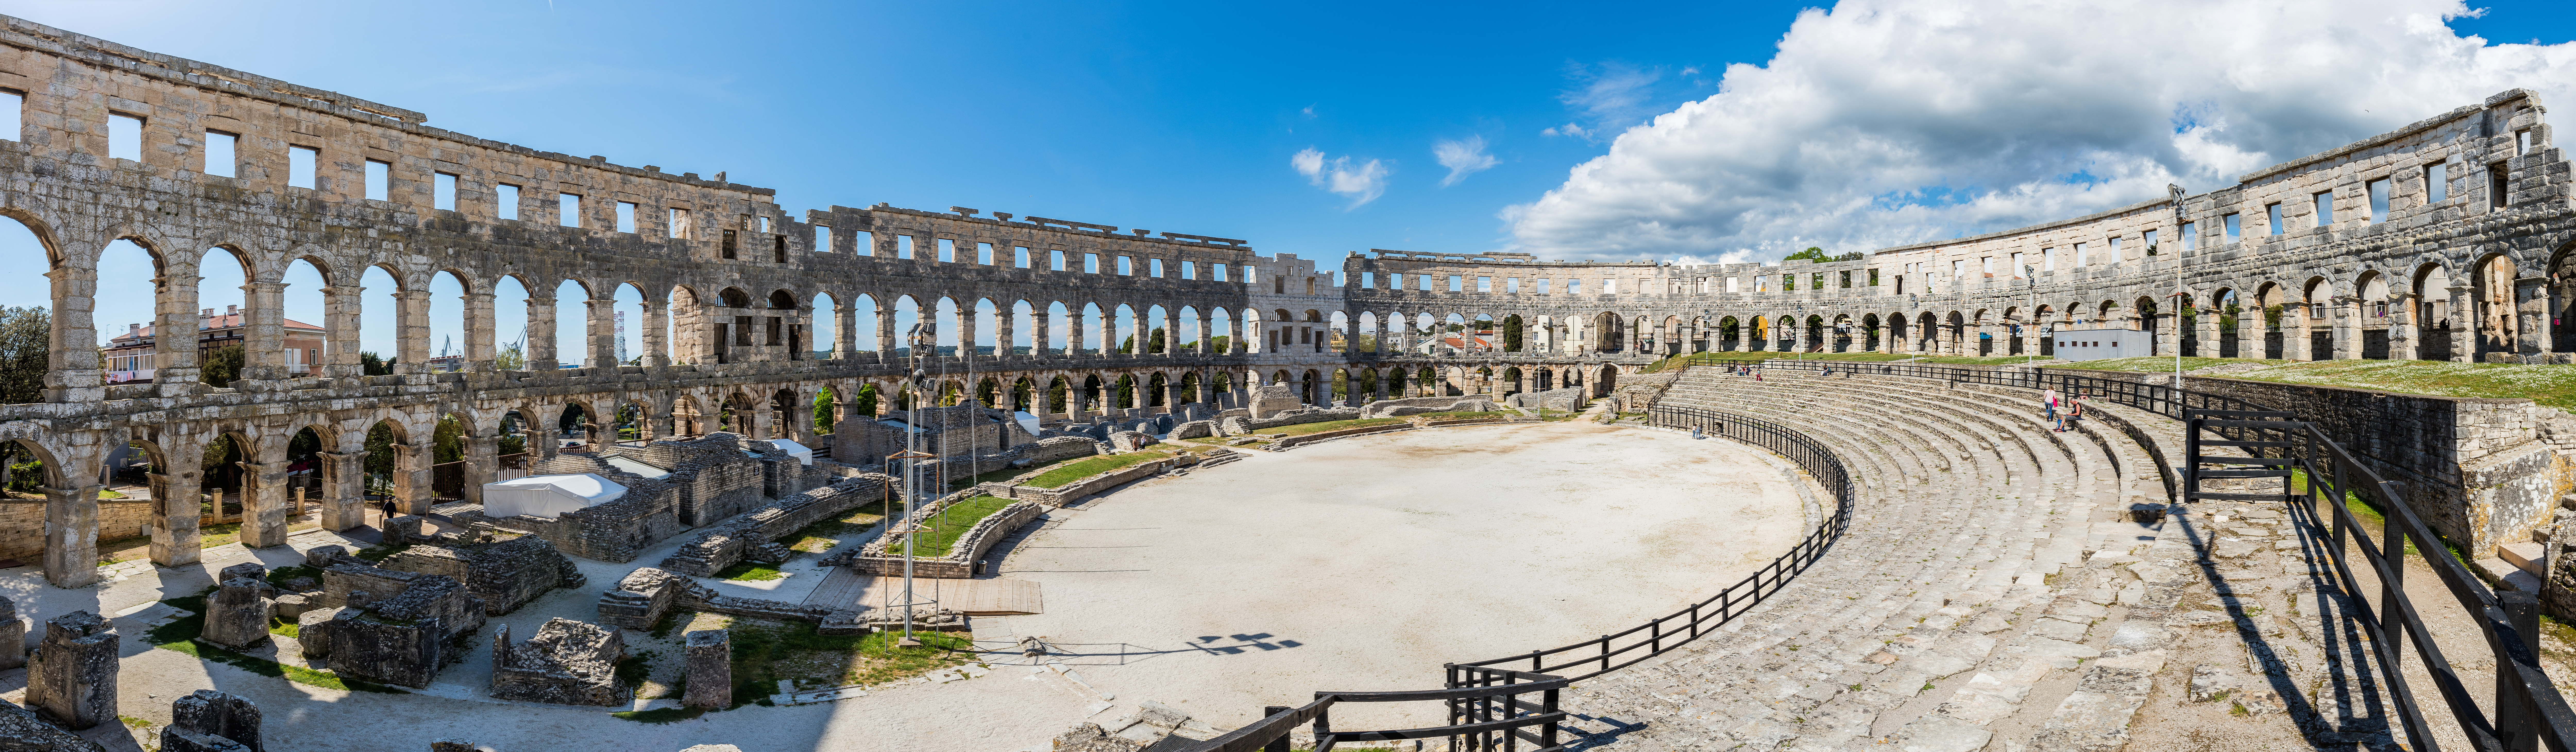 Luxury Vacation in Pula